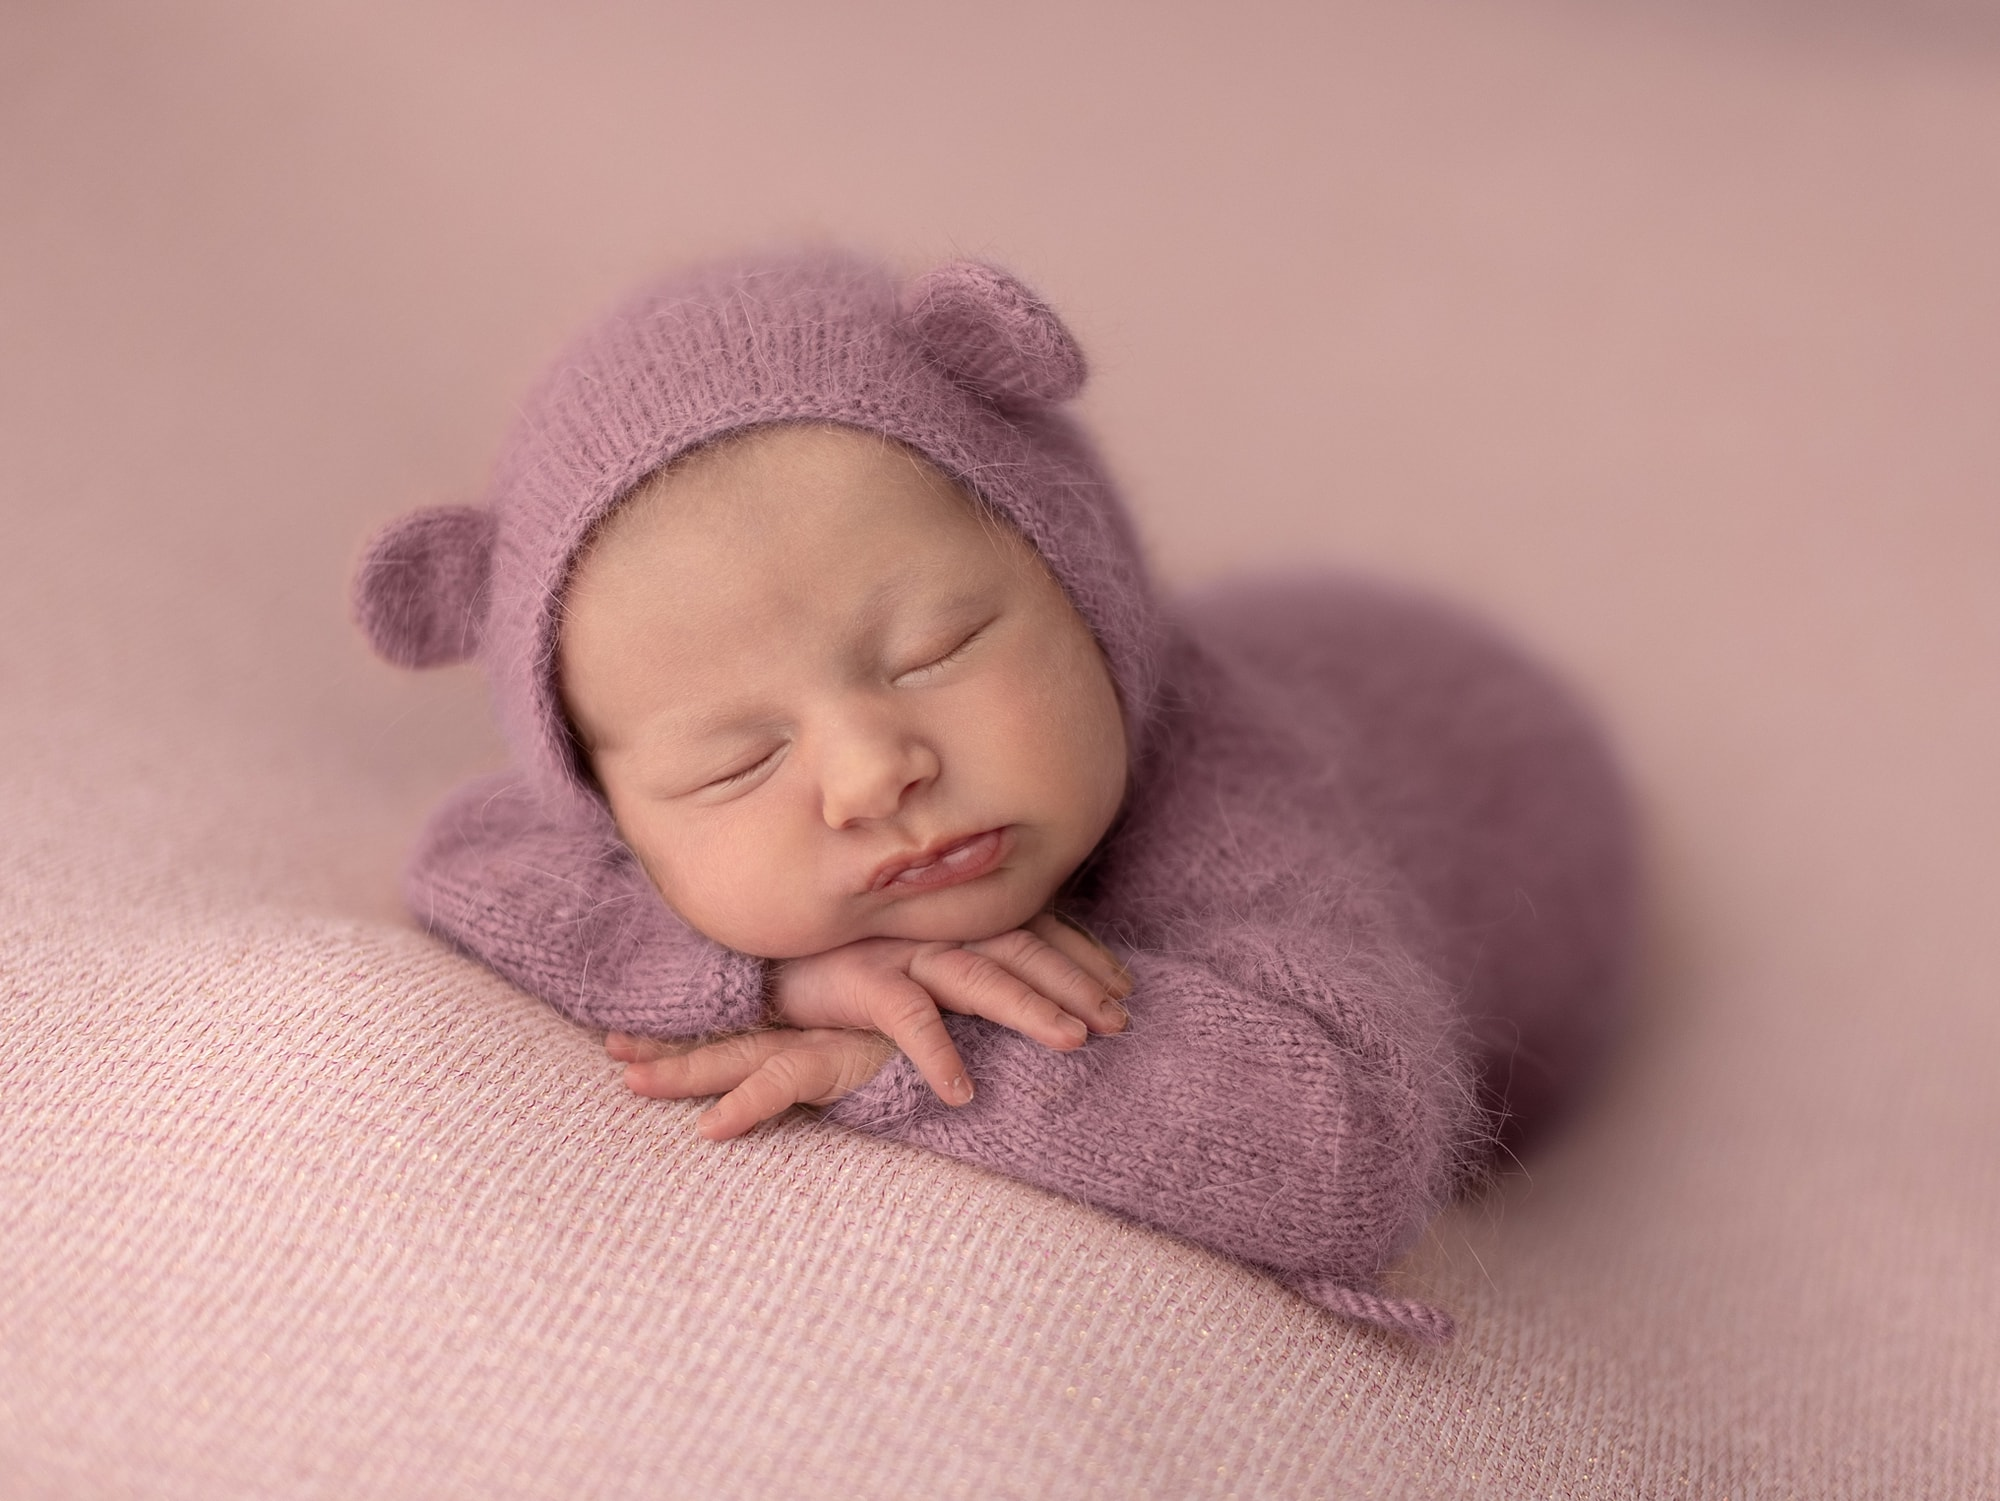 Baby girl in purple romper and teddy hat rests her head on her hands on a pink background during Newborn Shoot at Suffolk Studio